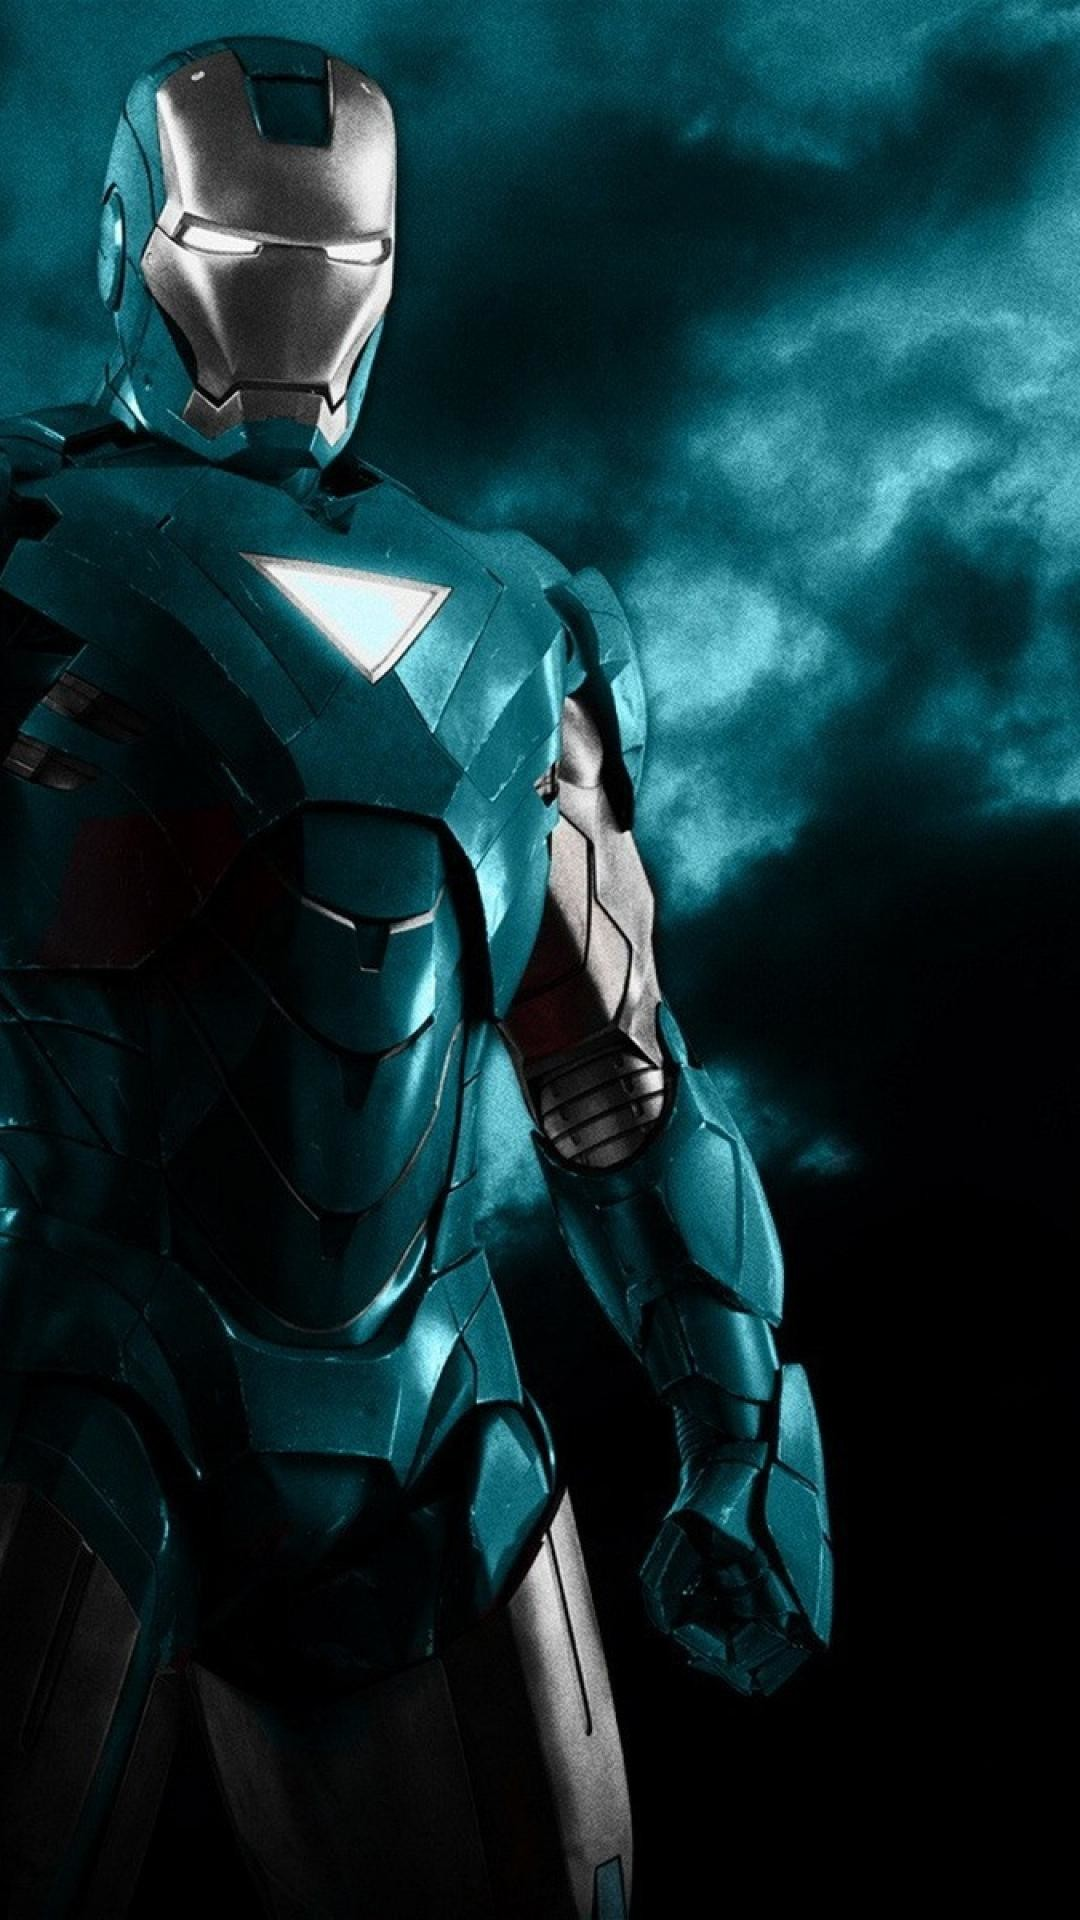 1920x1200 Ironman Desktop Wallpaper Hd